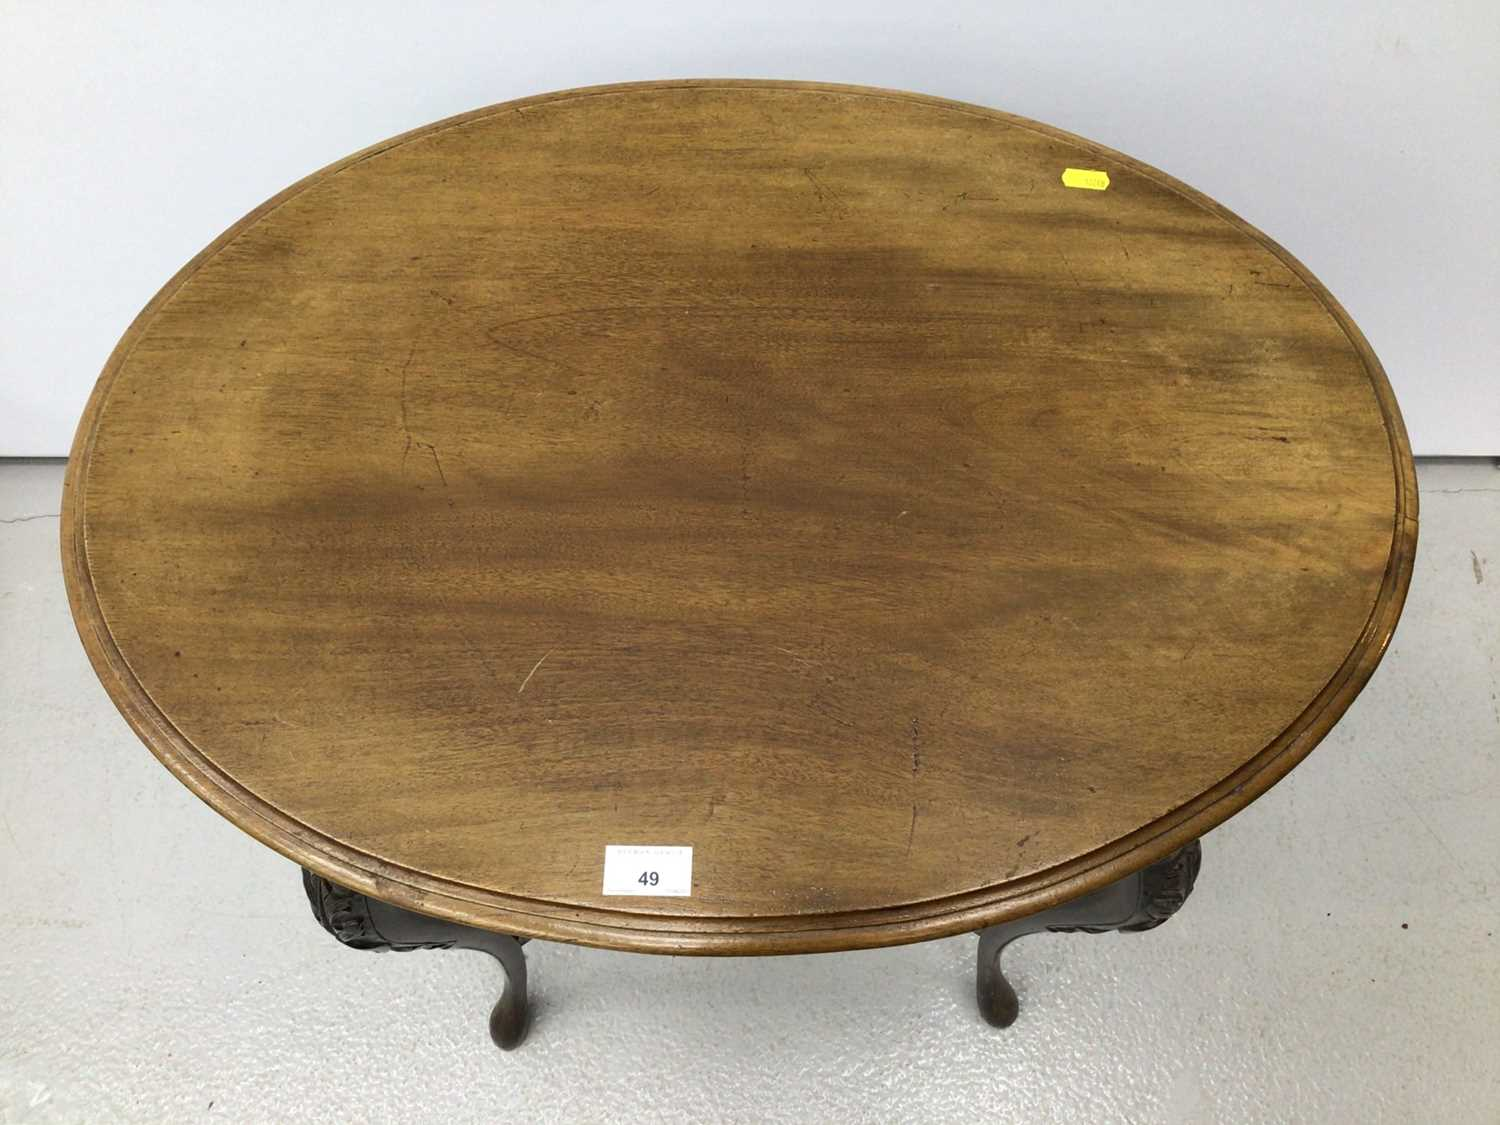 Edwardian mahogany oval occasional table on slender cabriole legs 68cm wide - Image 4 of 4